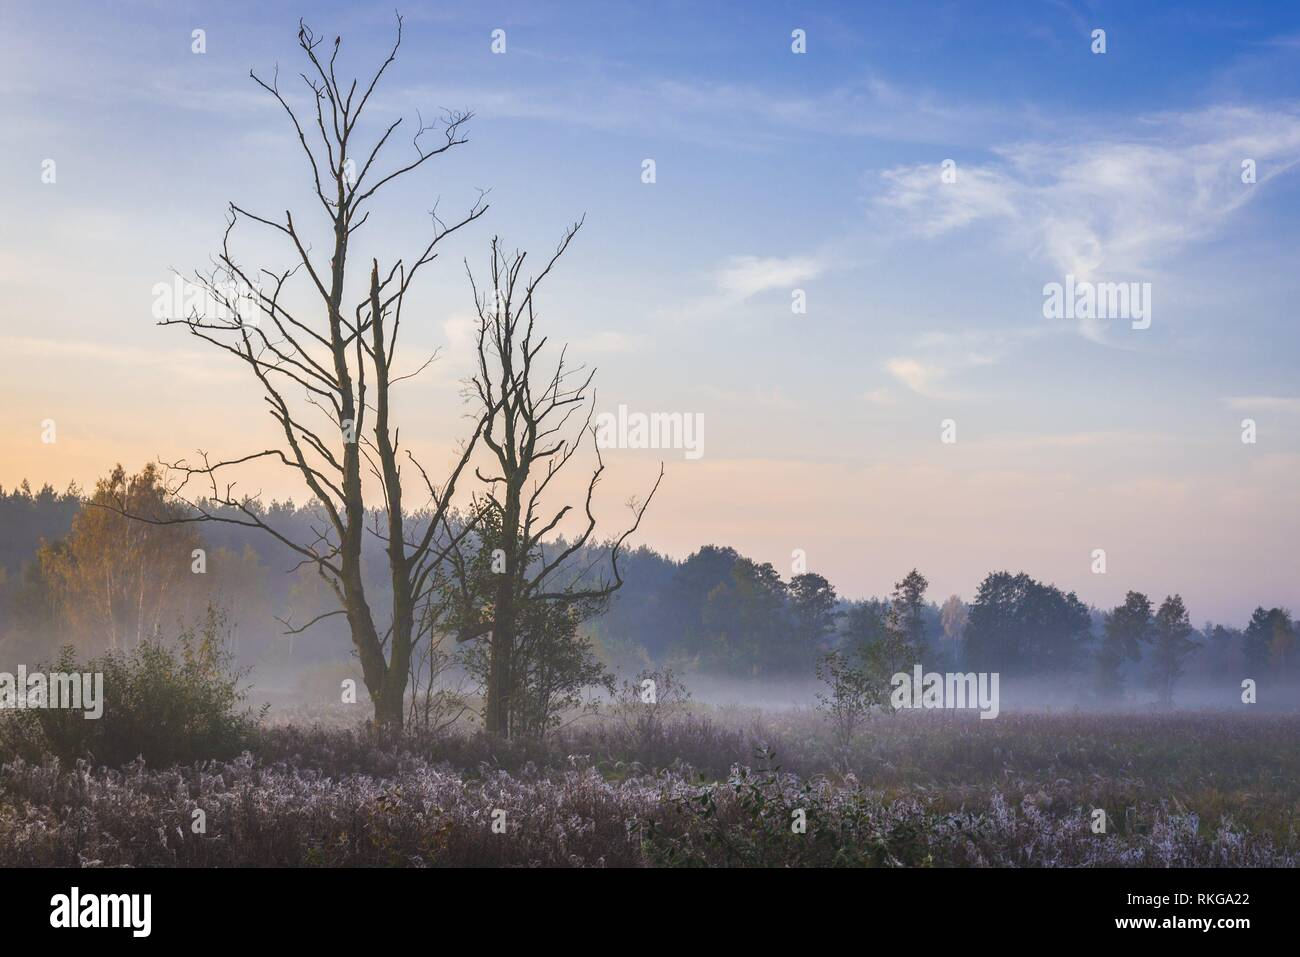 Morning view of a meadow in Gorki village, Sochaczew County on the edge of Kampinos Forest, large forests complex in Masovian Voivodeship of Poland. - Stock Image